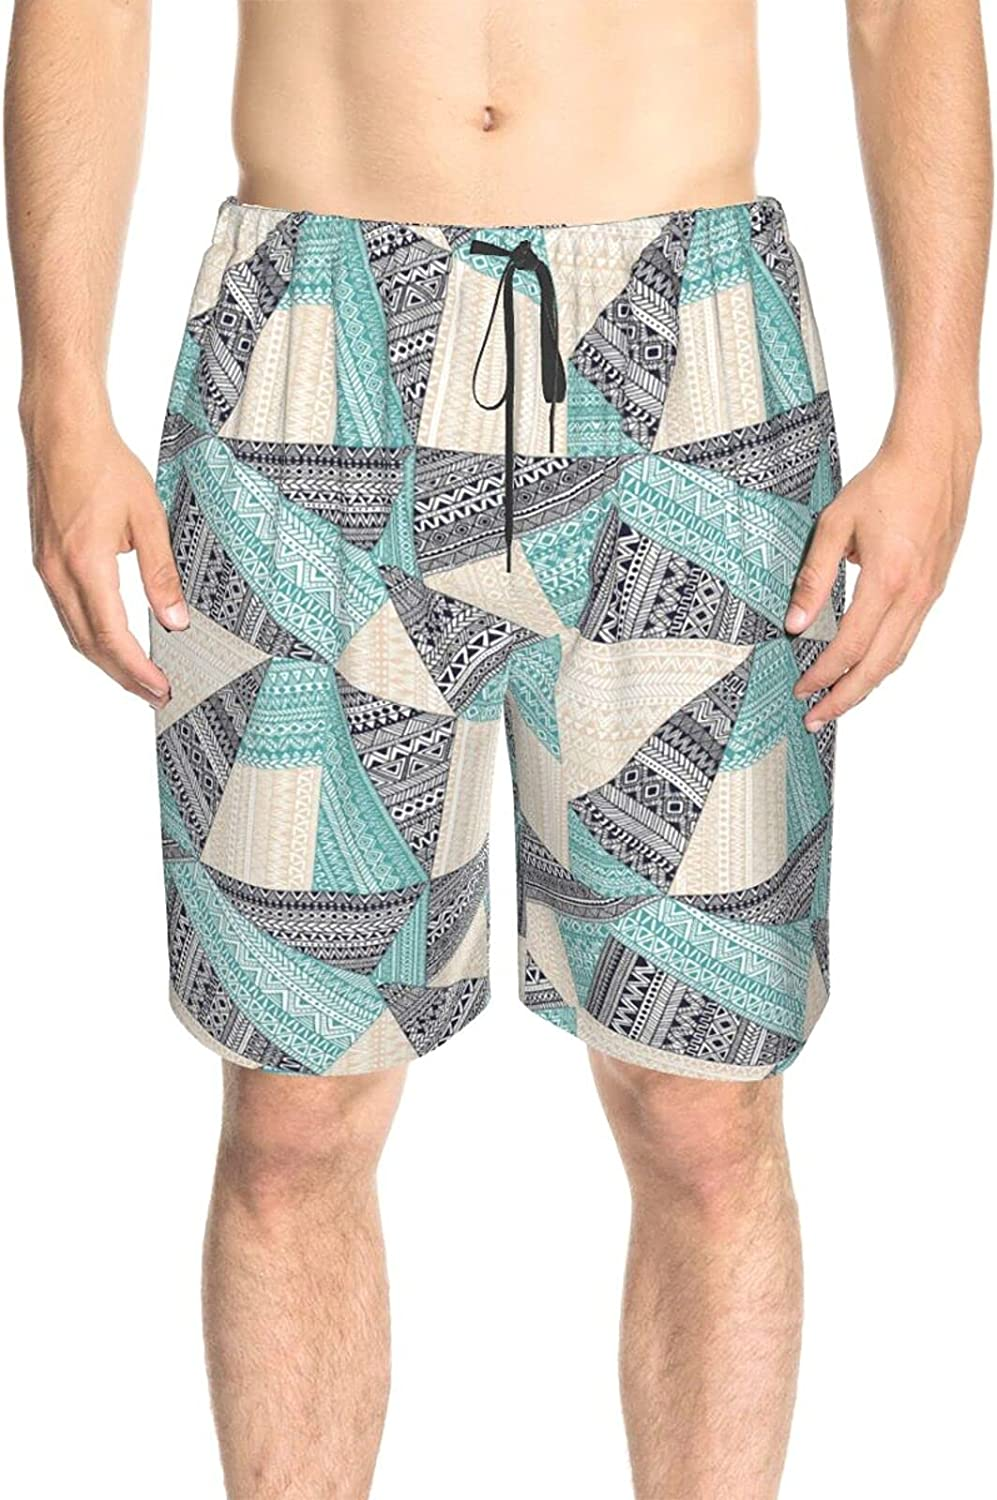 Men's Swim Shorts 80s 90s Blue White Beach Board Shorts Fast Dry Fashion Athletic Beach Short with Liner